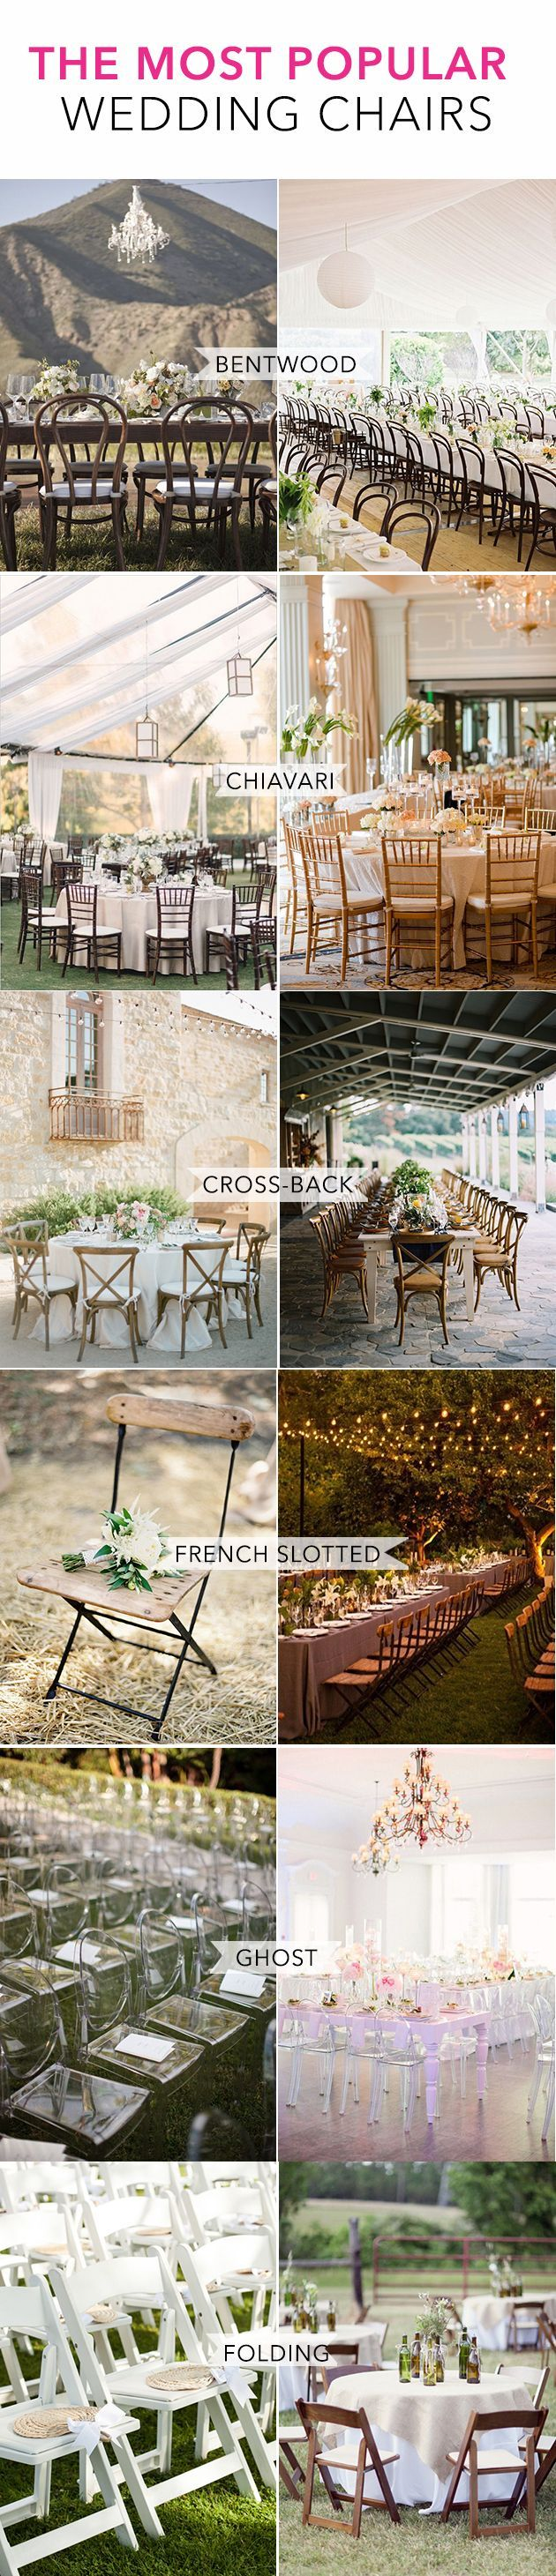 A guide to the most popular kinds of chairs brides use at their wedding ceremonies and receptions! | Brides.com